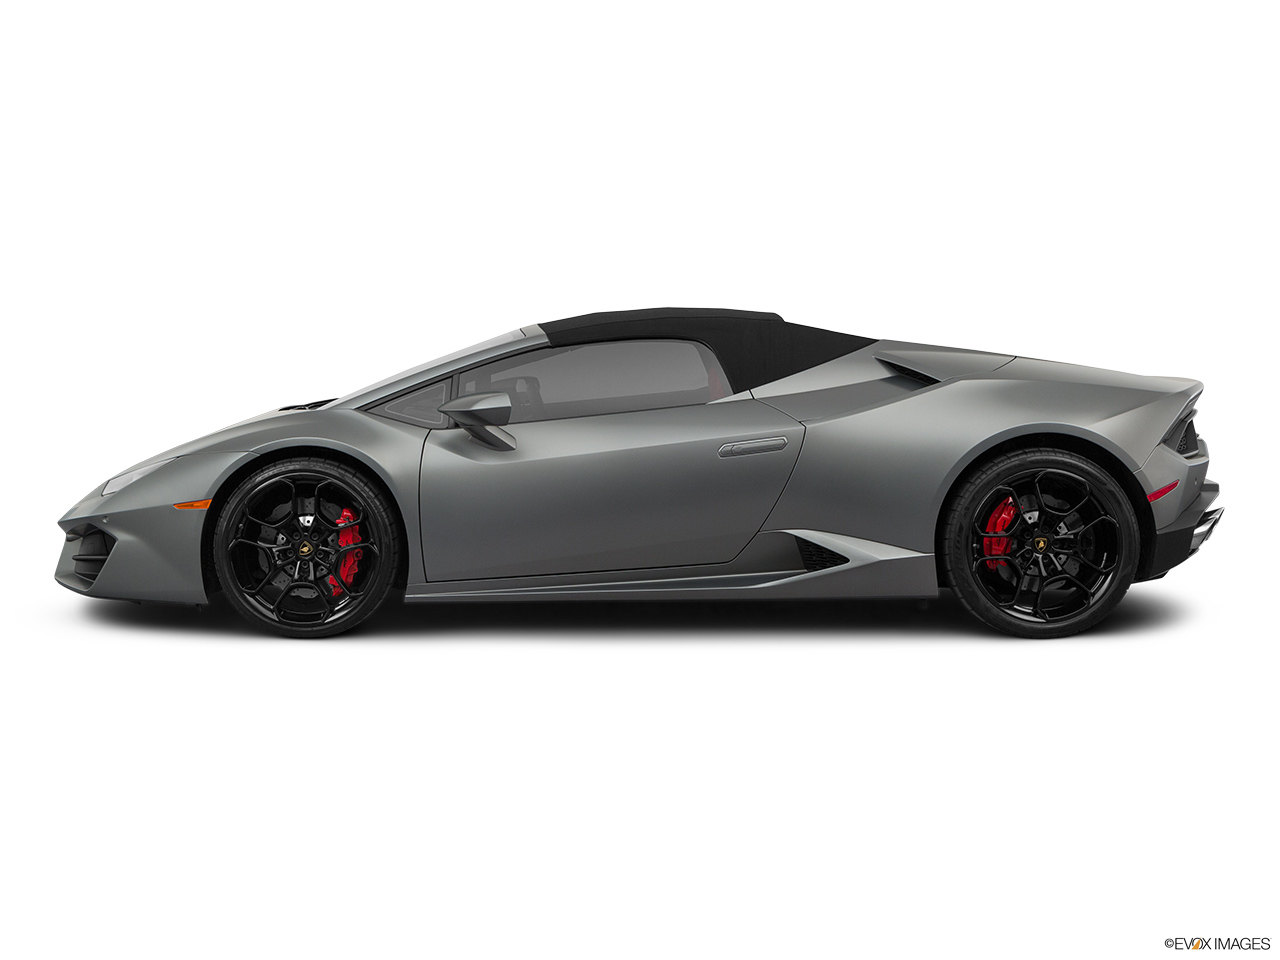 2019 Lamborghini Huracan Spyder LP580-2S Drivers side profile, convertible top up (convertibles only).